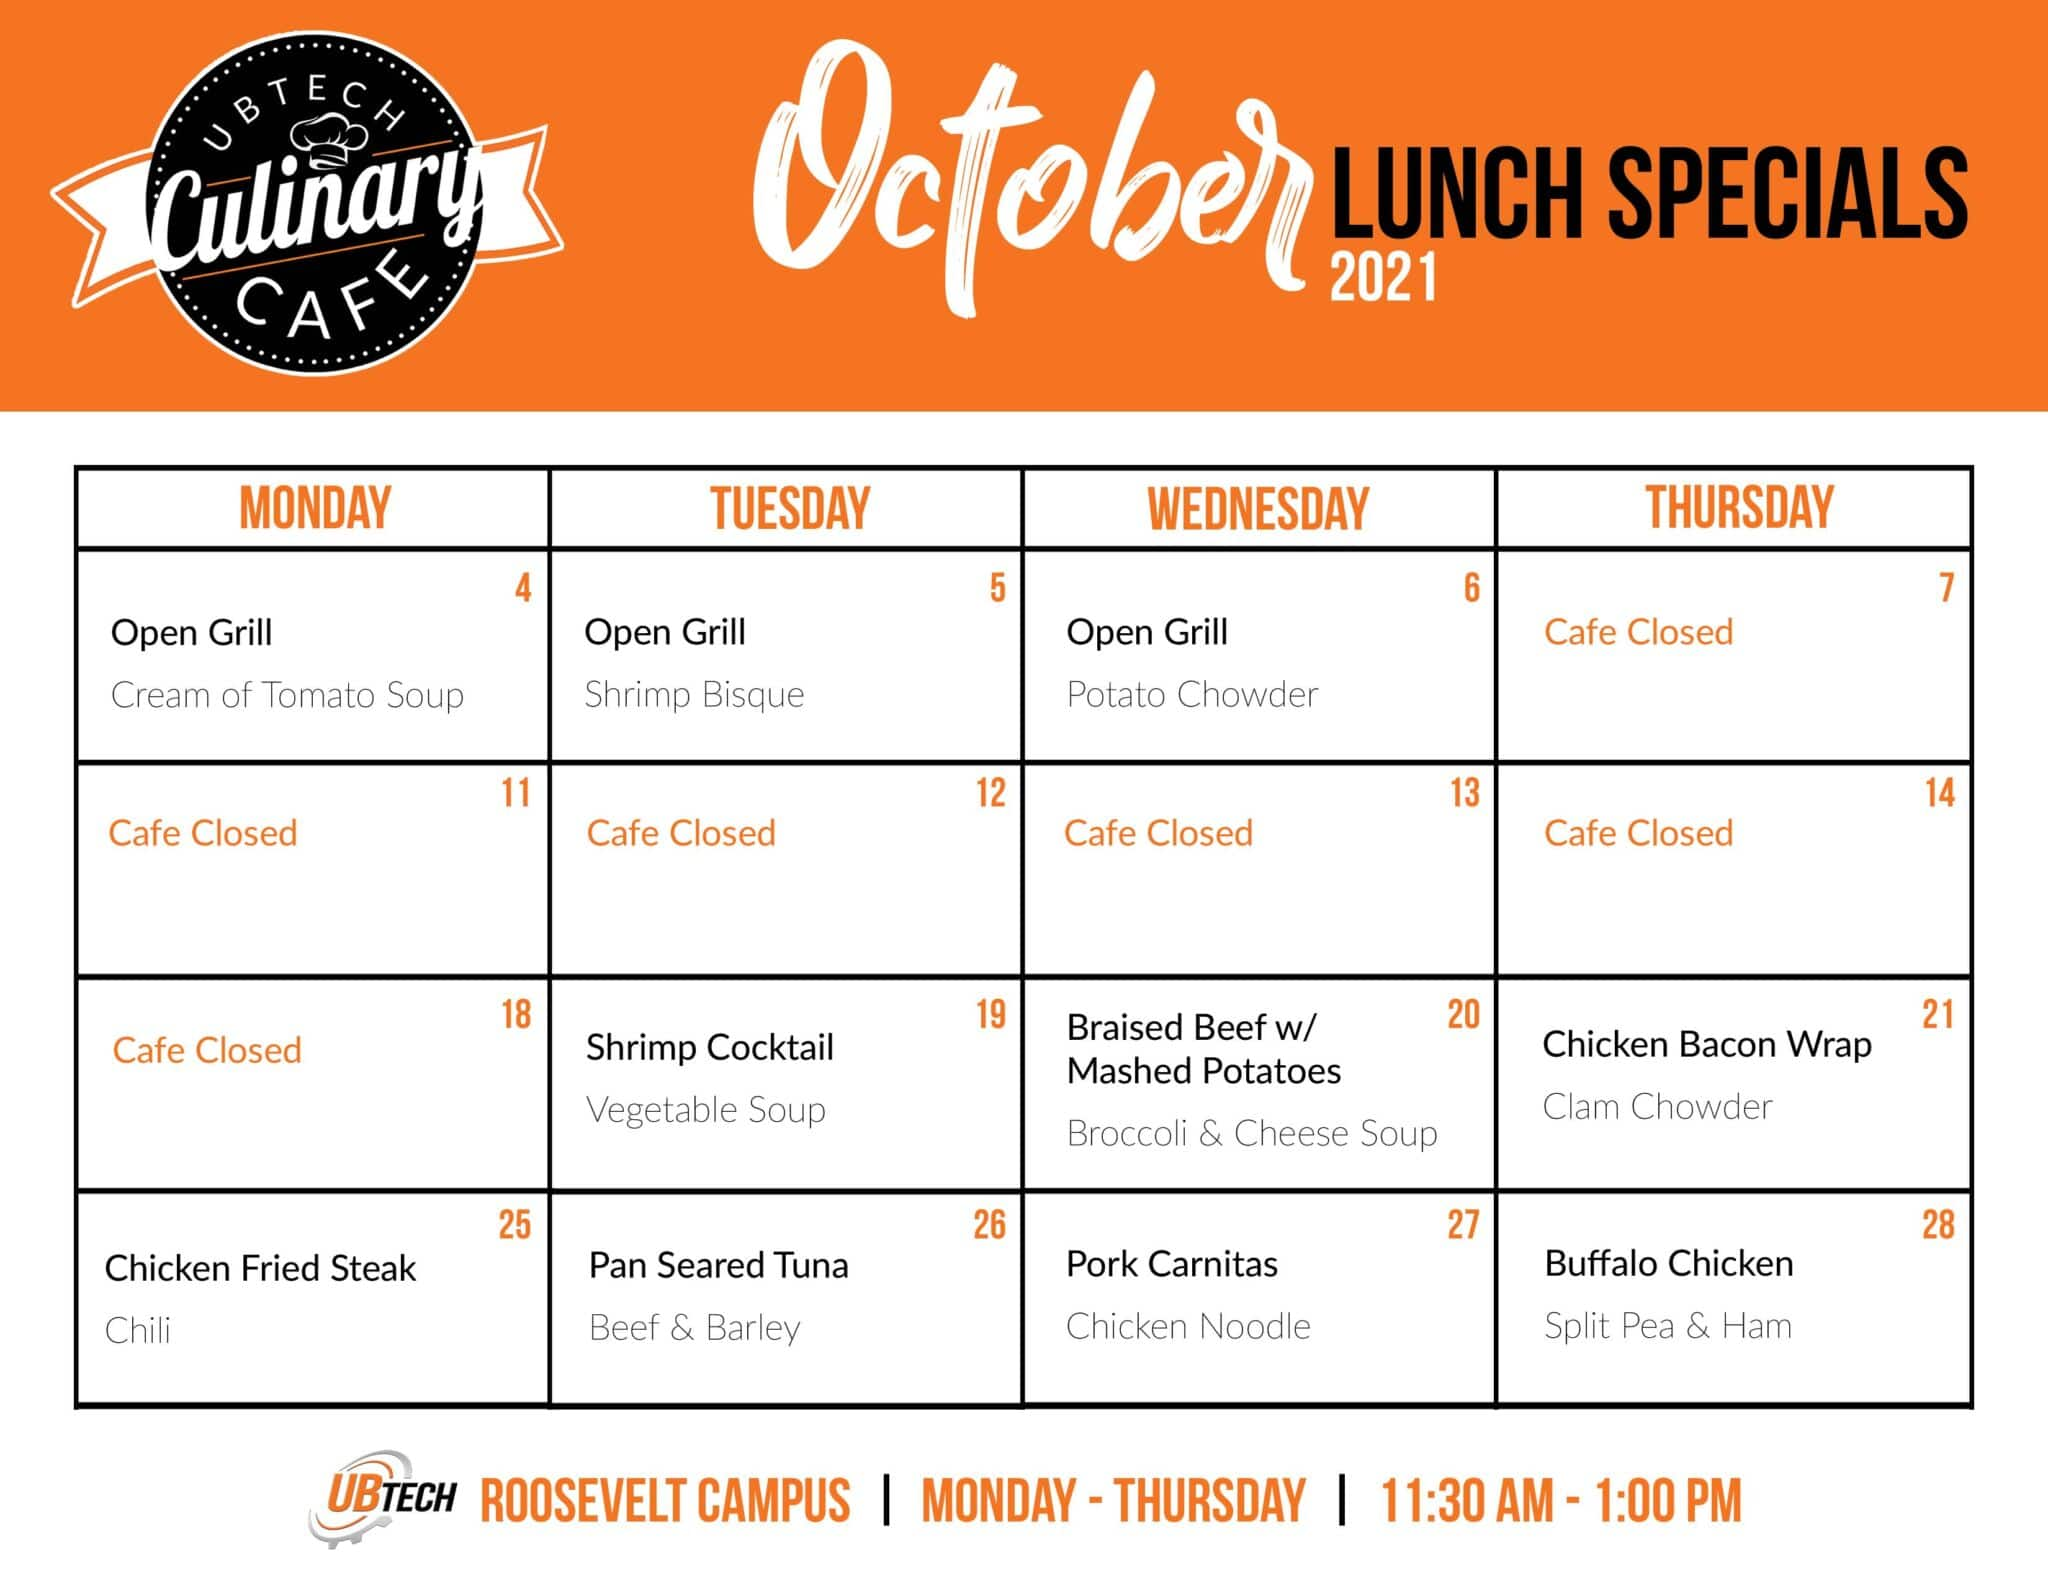 Monday, October 4th: Open grill, cream of tomato soup. Tuesday, October 5th: Open grill, shrimp bisque. Wednesday, October 6th: Open grill, potato chowder. Cafe closed Thursday, October 7th-Monday October 18th. Tuesday, October 19th: Shrimp cocktail, vegetable soup. Wednesday, October 20th: Braised beef with mashed potatoes, broccoli and cheese soup. Thursday, October 21st: Chicken bacon wrap, clam chowder. Monday, October 25th: chicken fried steak, chili. Tuesday, October 26th: Pan seared tuna, beef and barley. Wednesday, October 27th: Pork carnitas. chicken noodle. Thursday, October 28th: Buffalo chicken, split pea and ham.